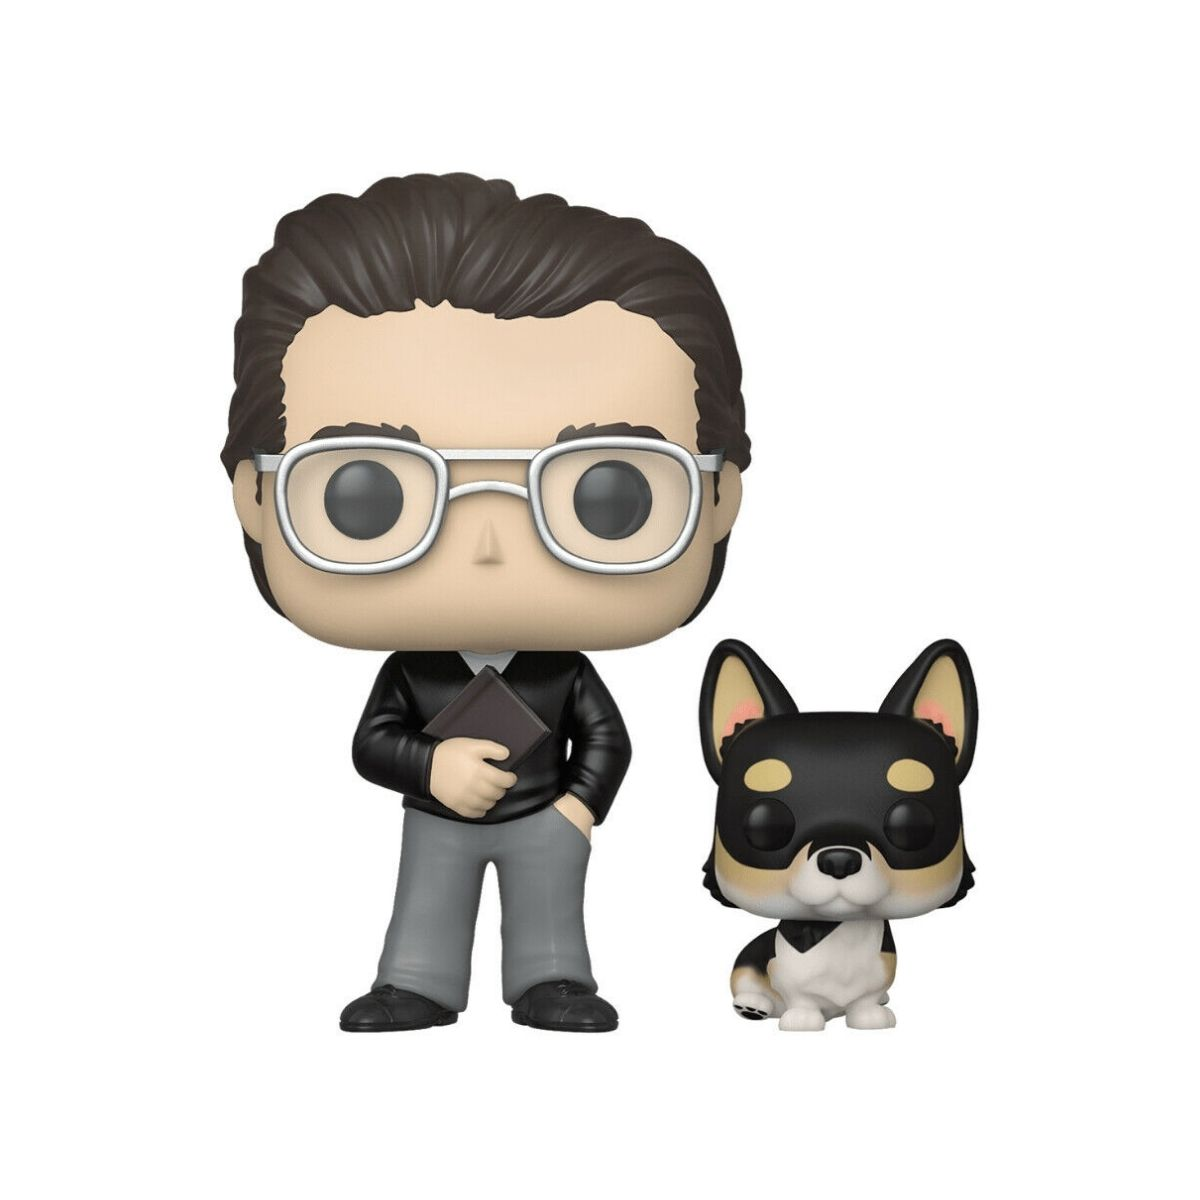 Funko Pop Icons Stephen King e Molly Fye #53  - Game Land Brinquedos